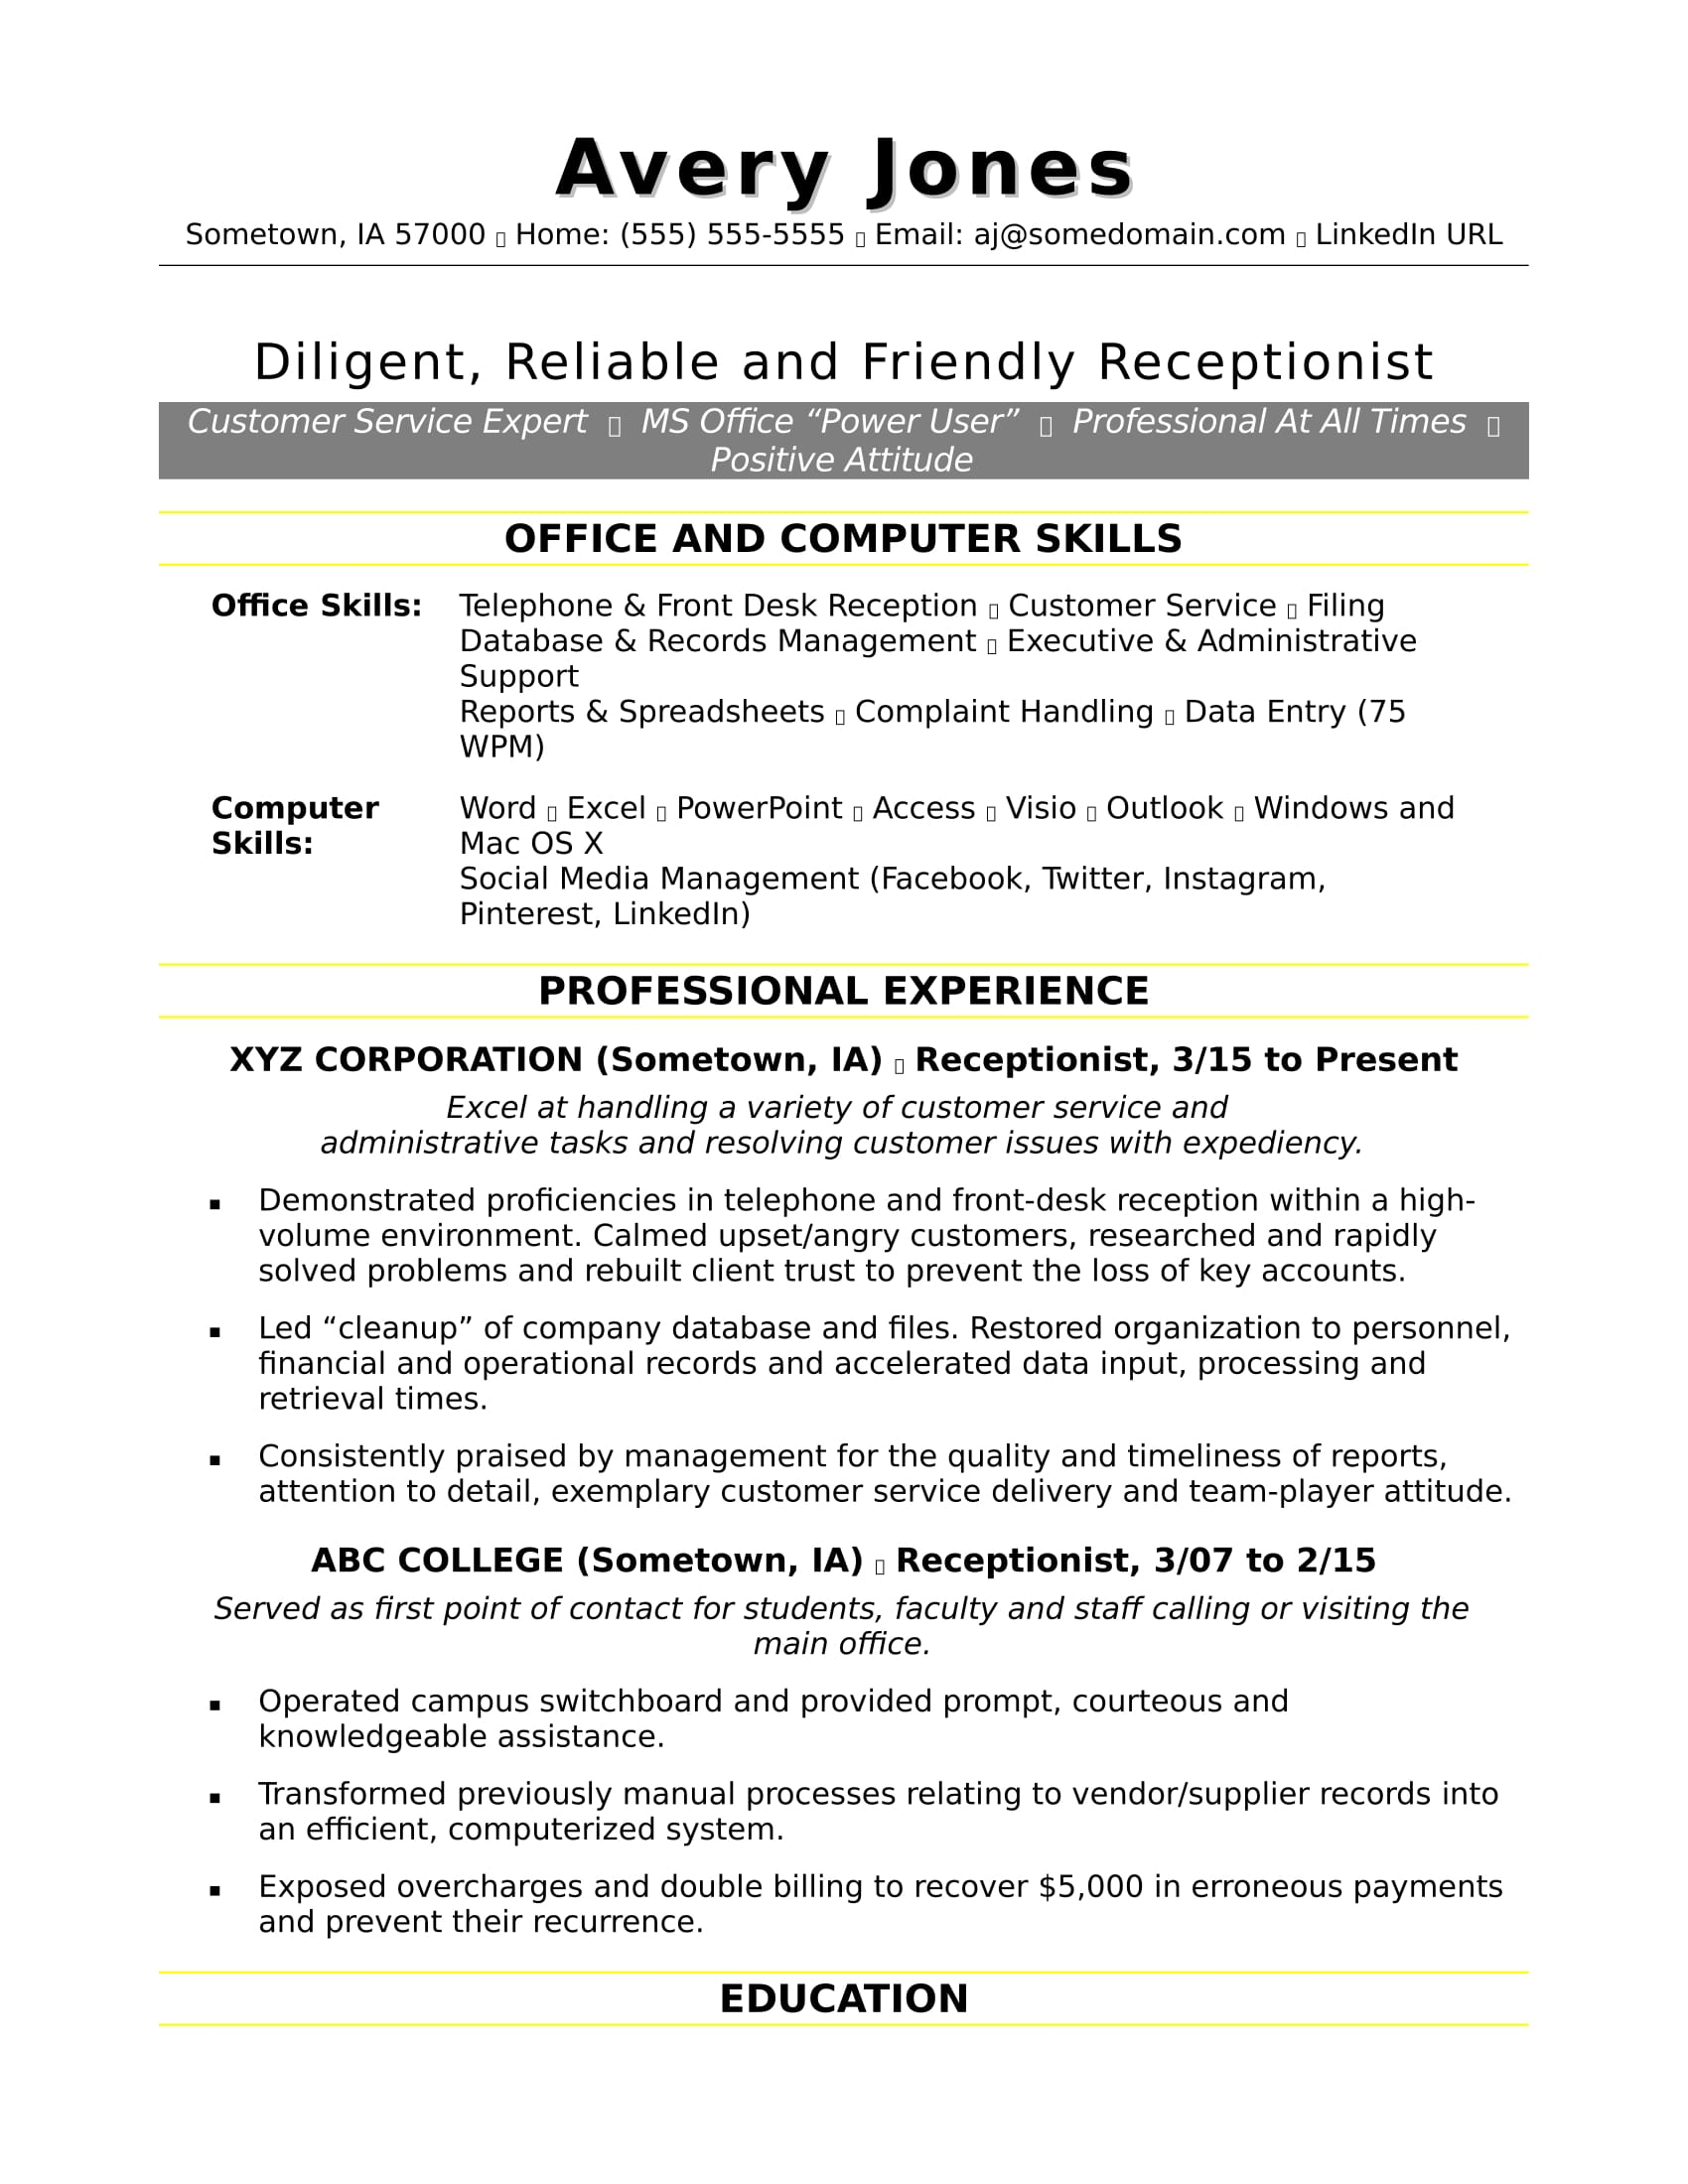 skills for a receptionist resumes